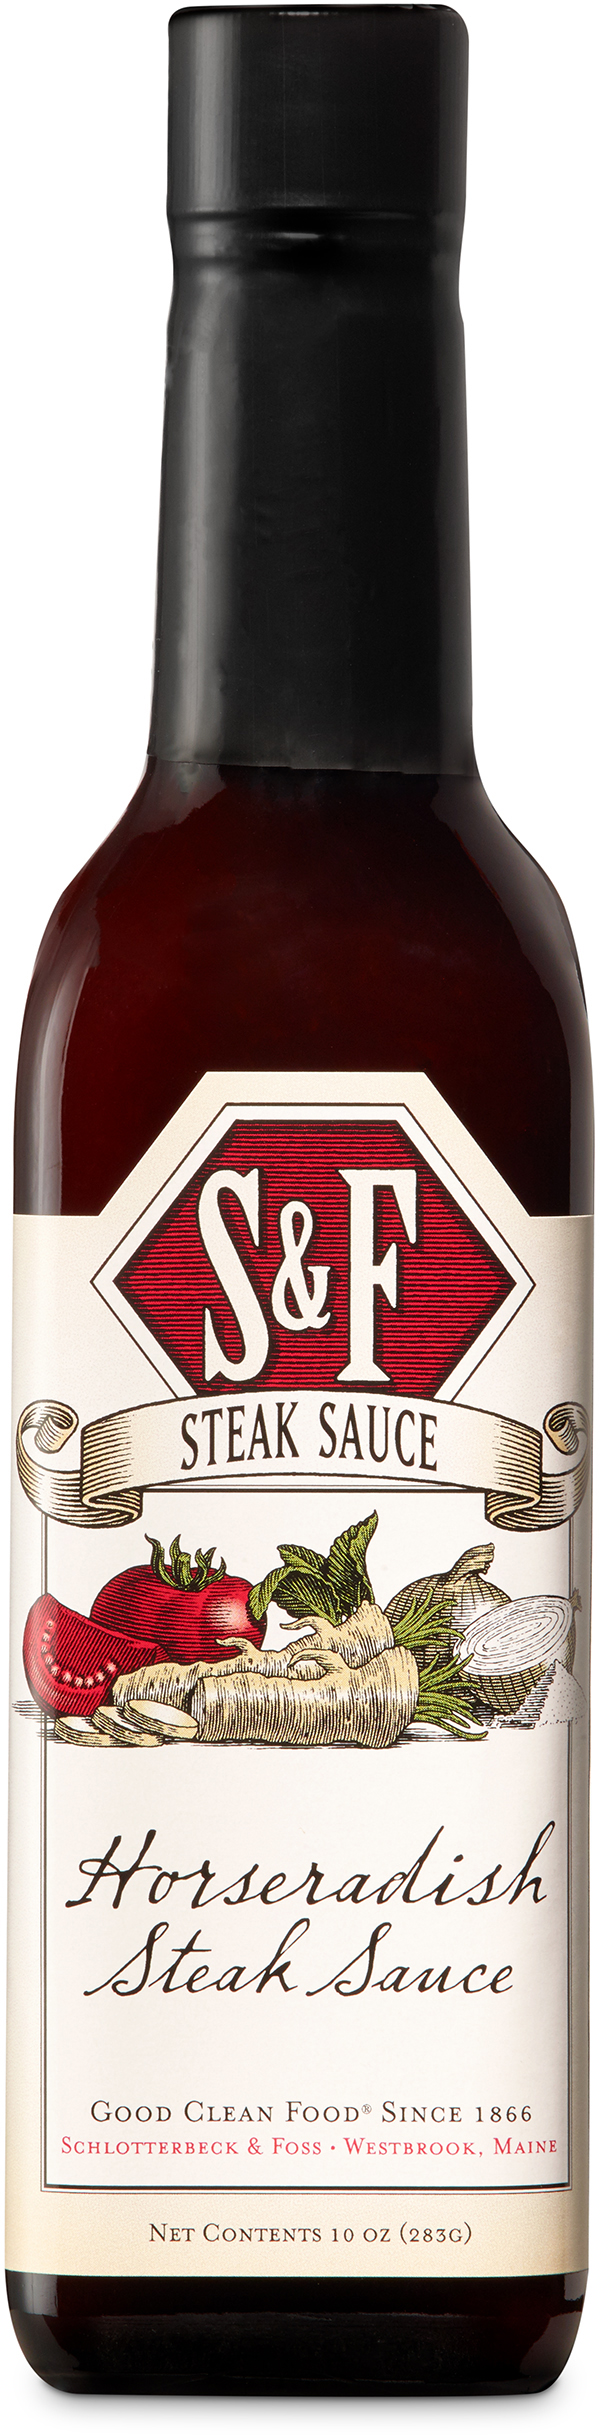 Horseradish Steak Sauce Meat Condiments Schlotterbeck Foss